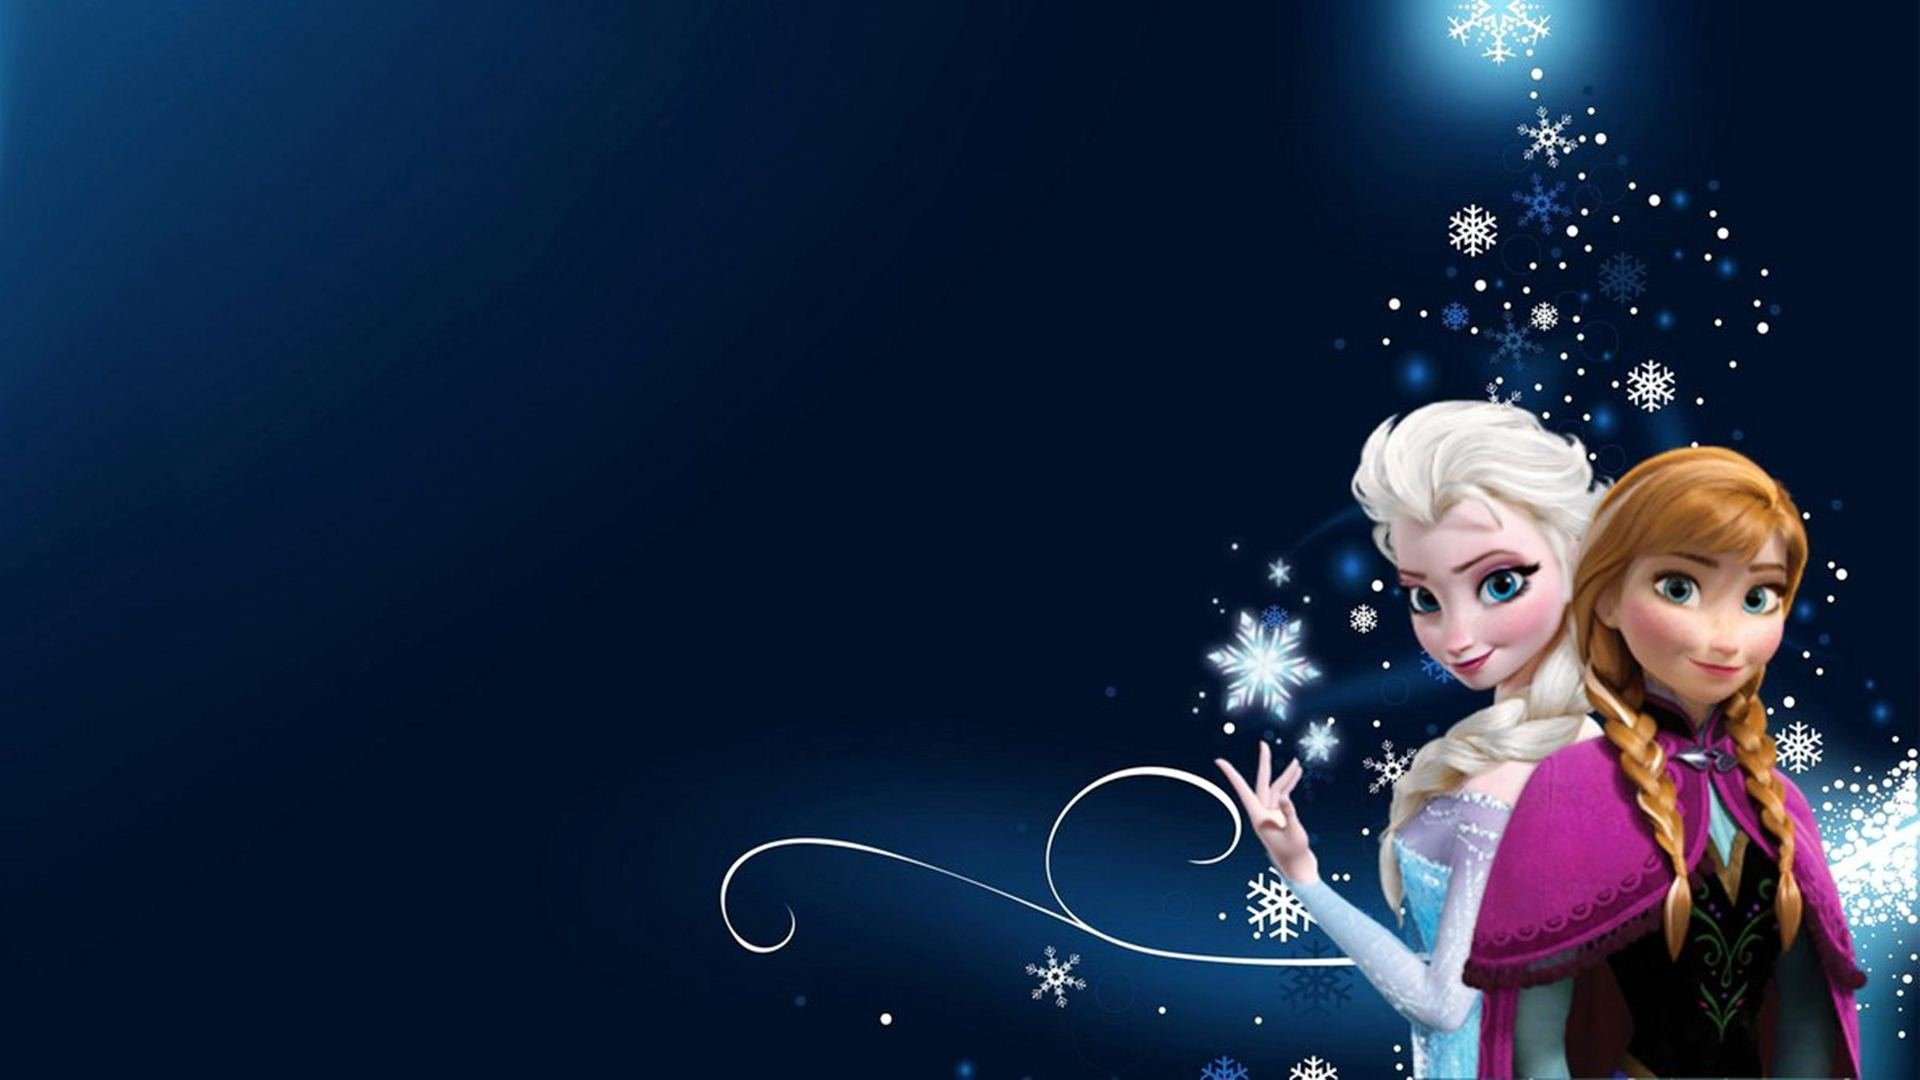 Www Animation Wallpaper Frozen Animation Adventure Comedy Family Musical Fantasy